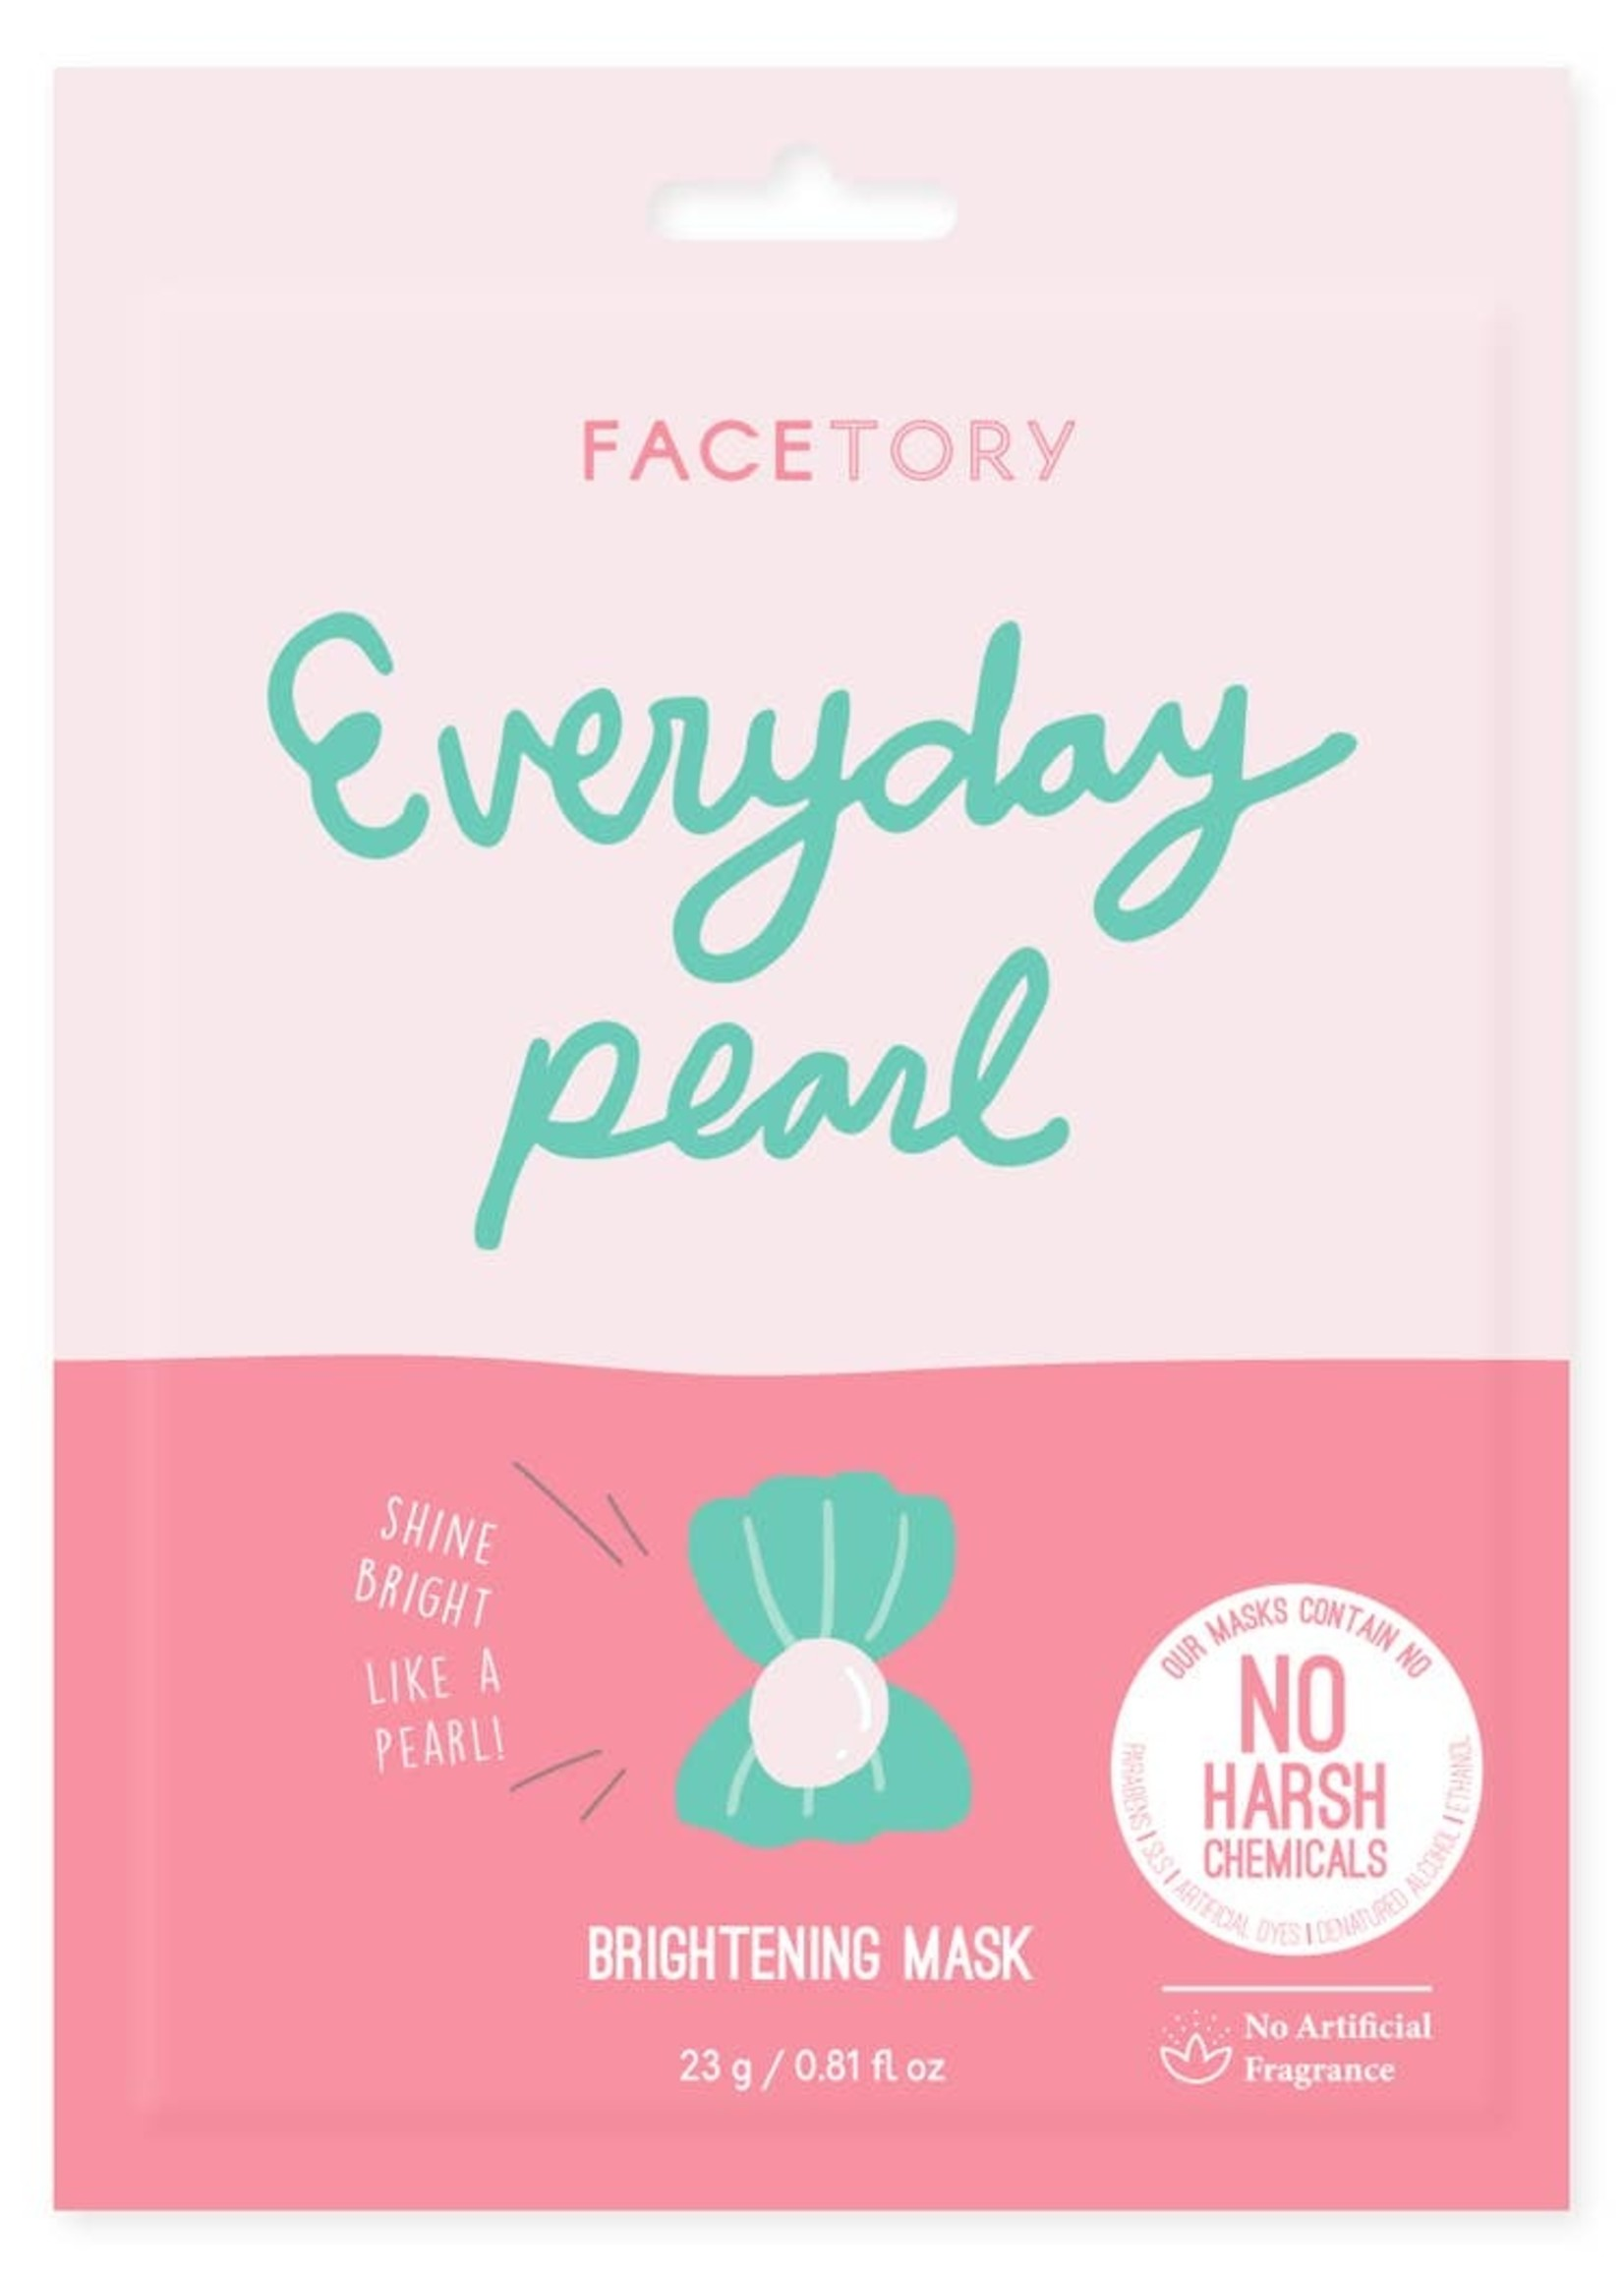 facetory Everyday, Pearl Brightening Mask